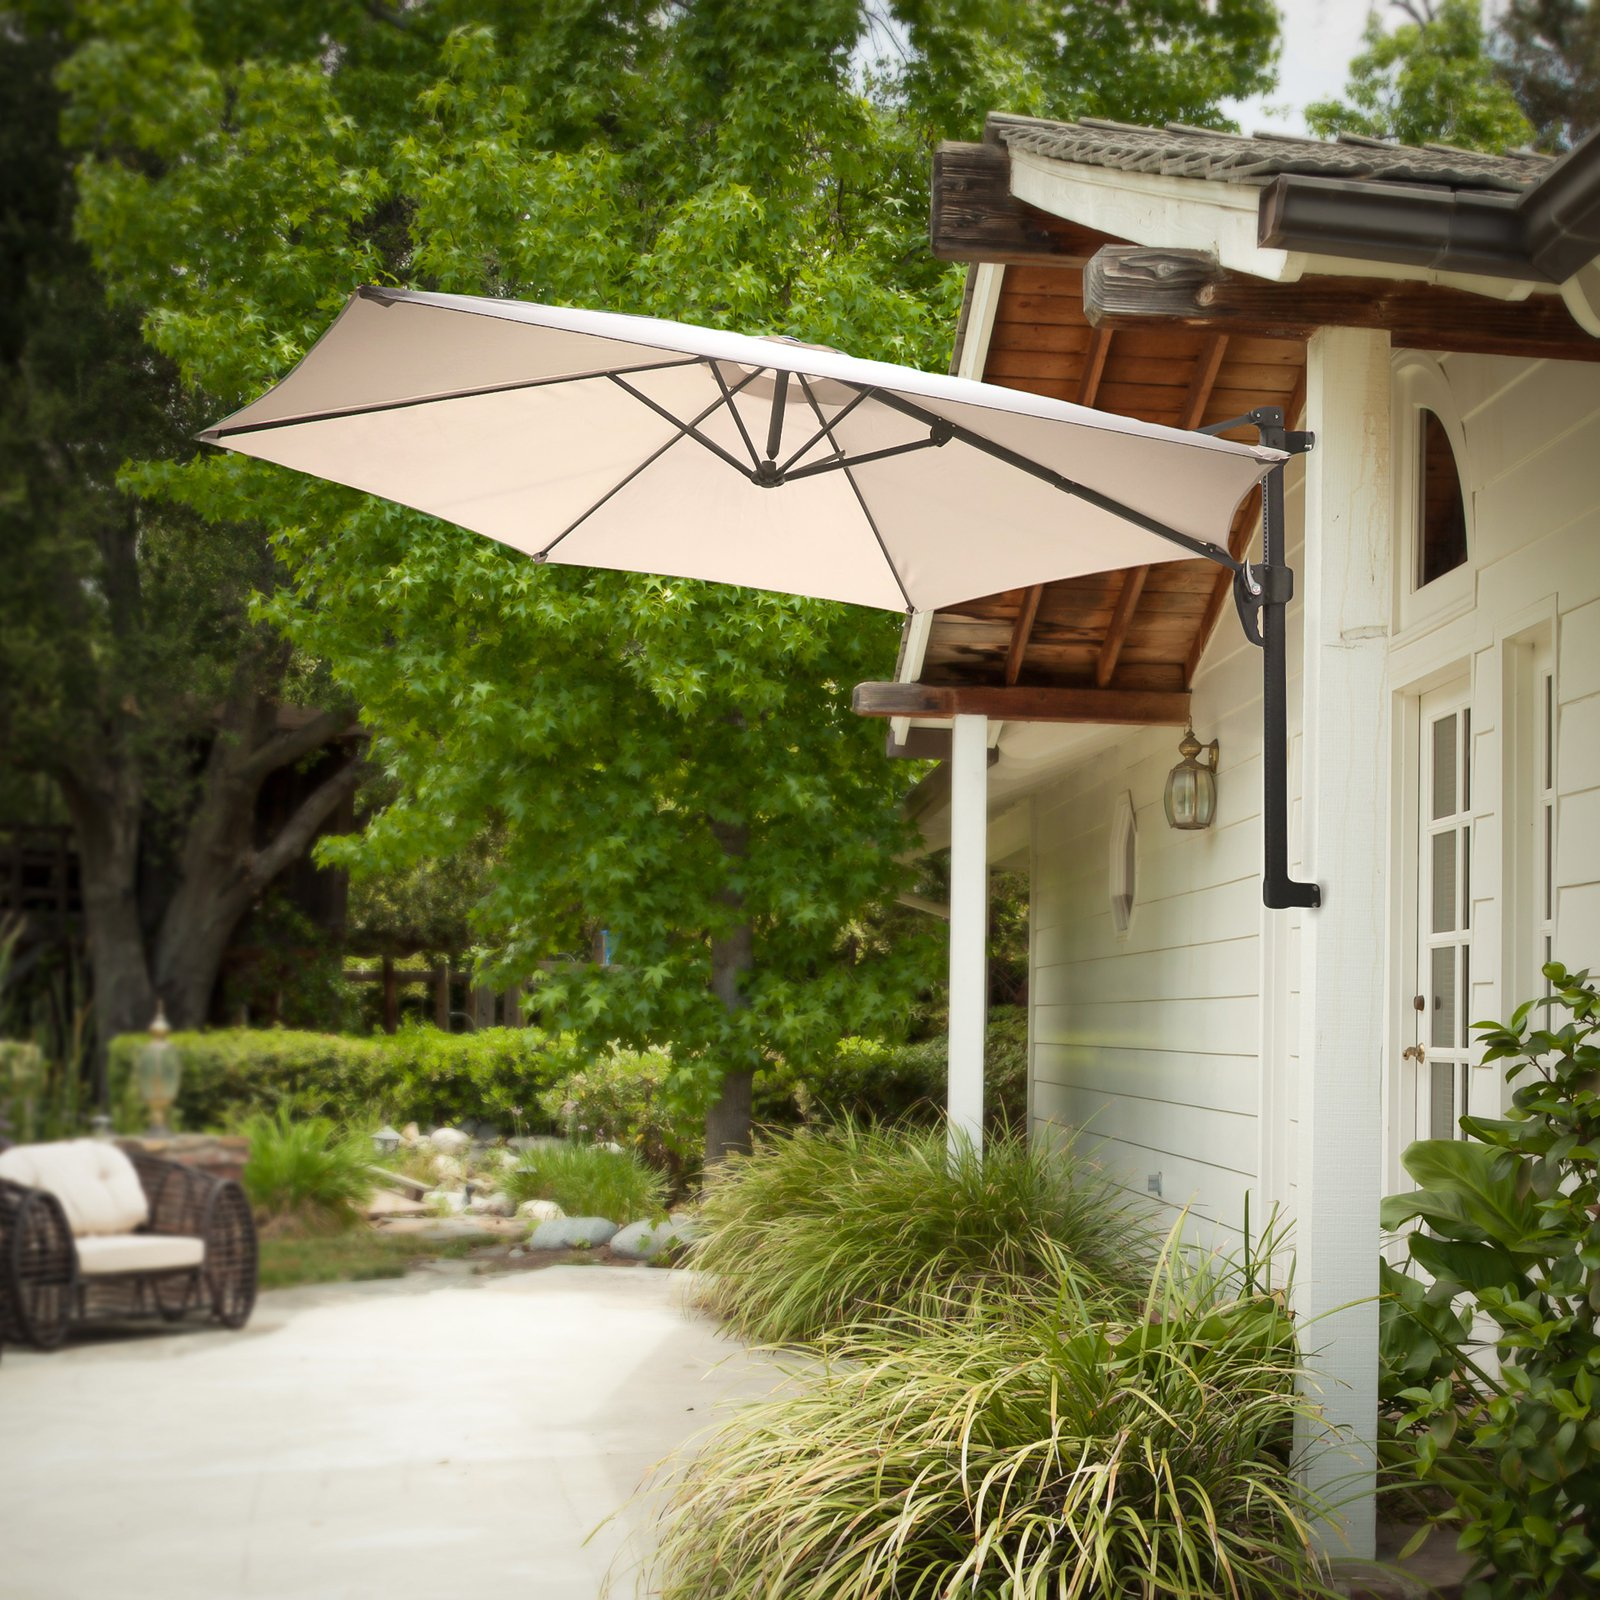 patio mounted must the from worldstores garden haves delivery parasols home umbrella for parasol next everything htm img c wall day cantilever